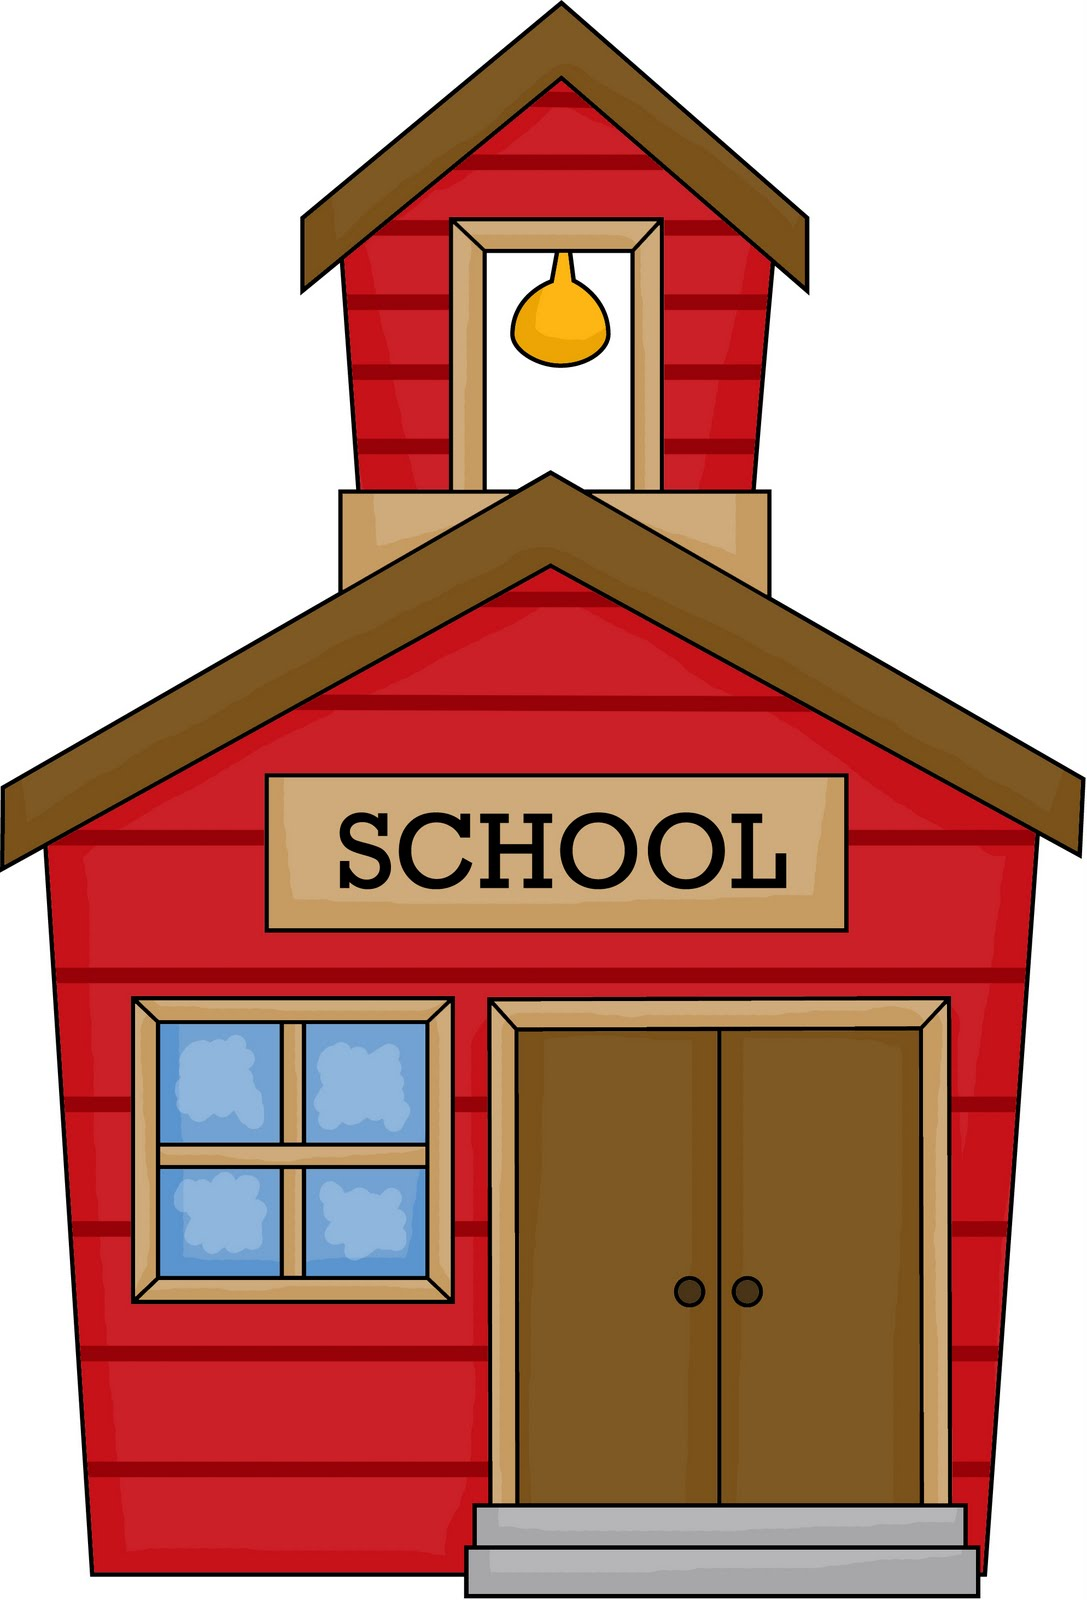 School House Images-school house images-8